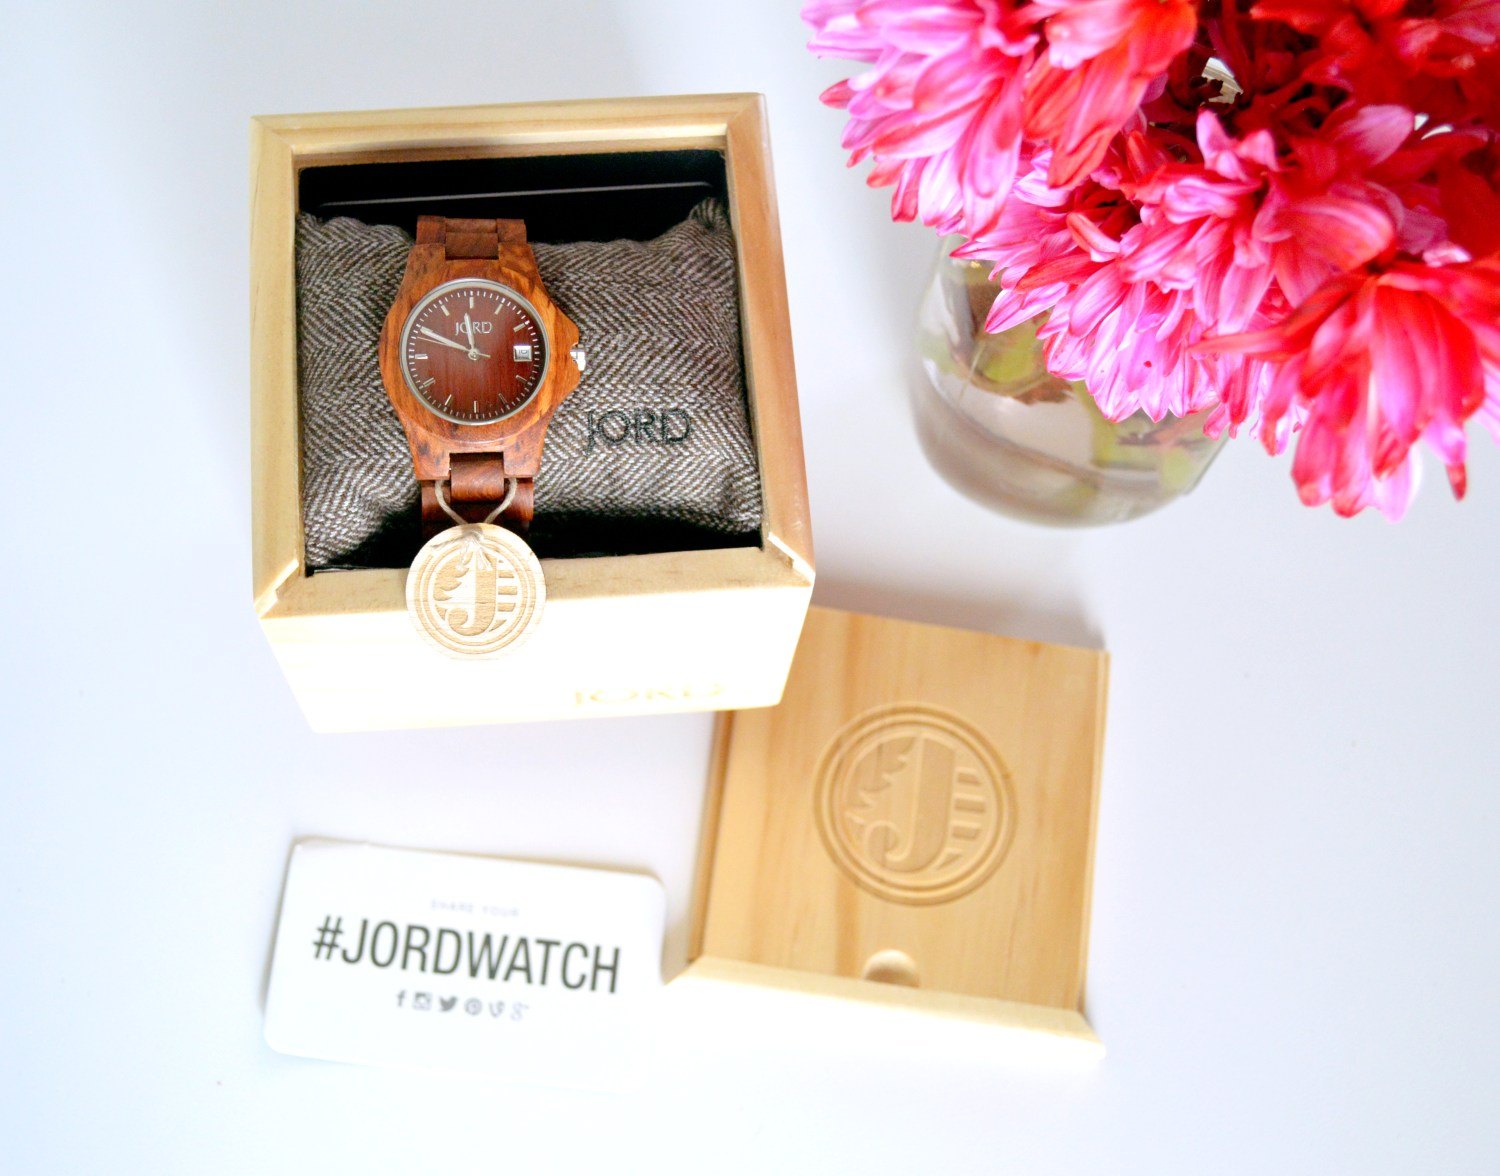 JORD wooden watches stand the test of time and are perfect as wedding gifts!